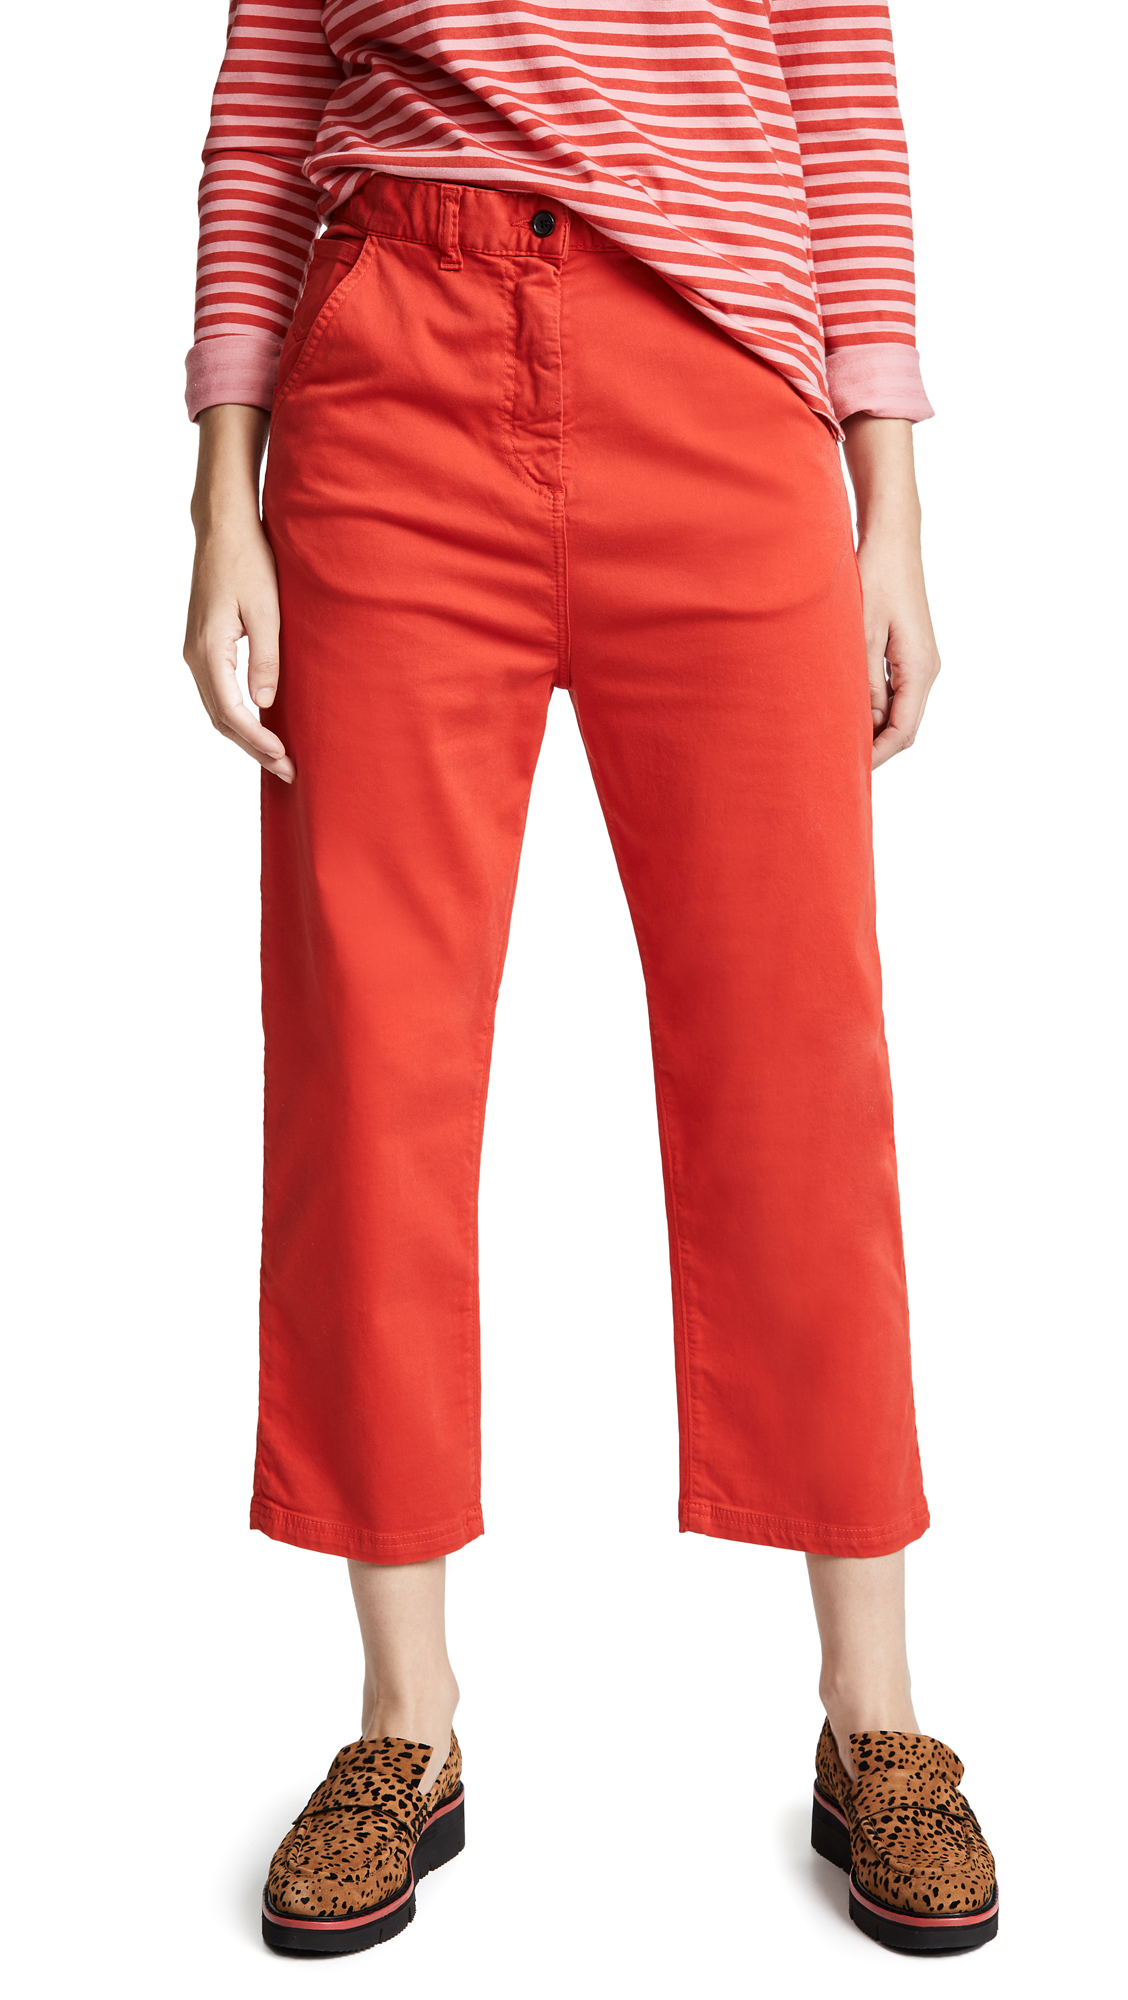 Paul Smith Cropped Trousers In Red Orange